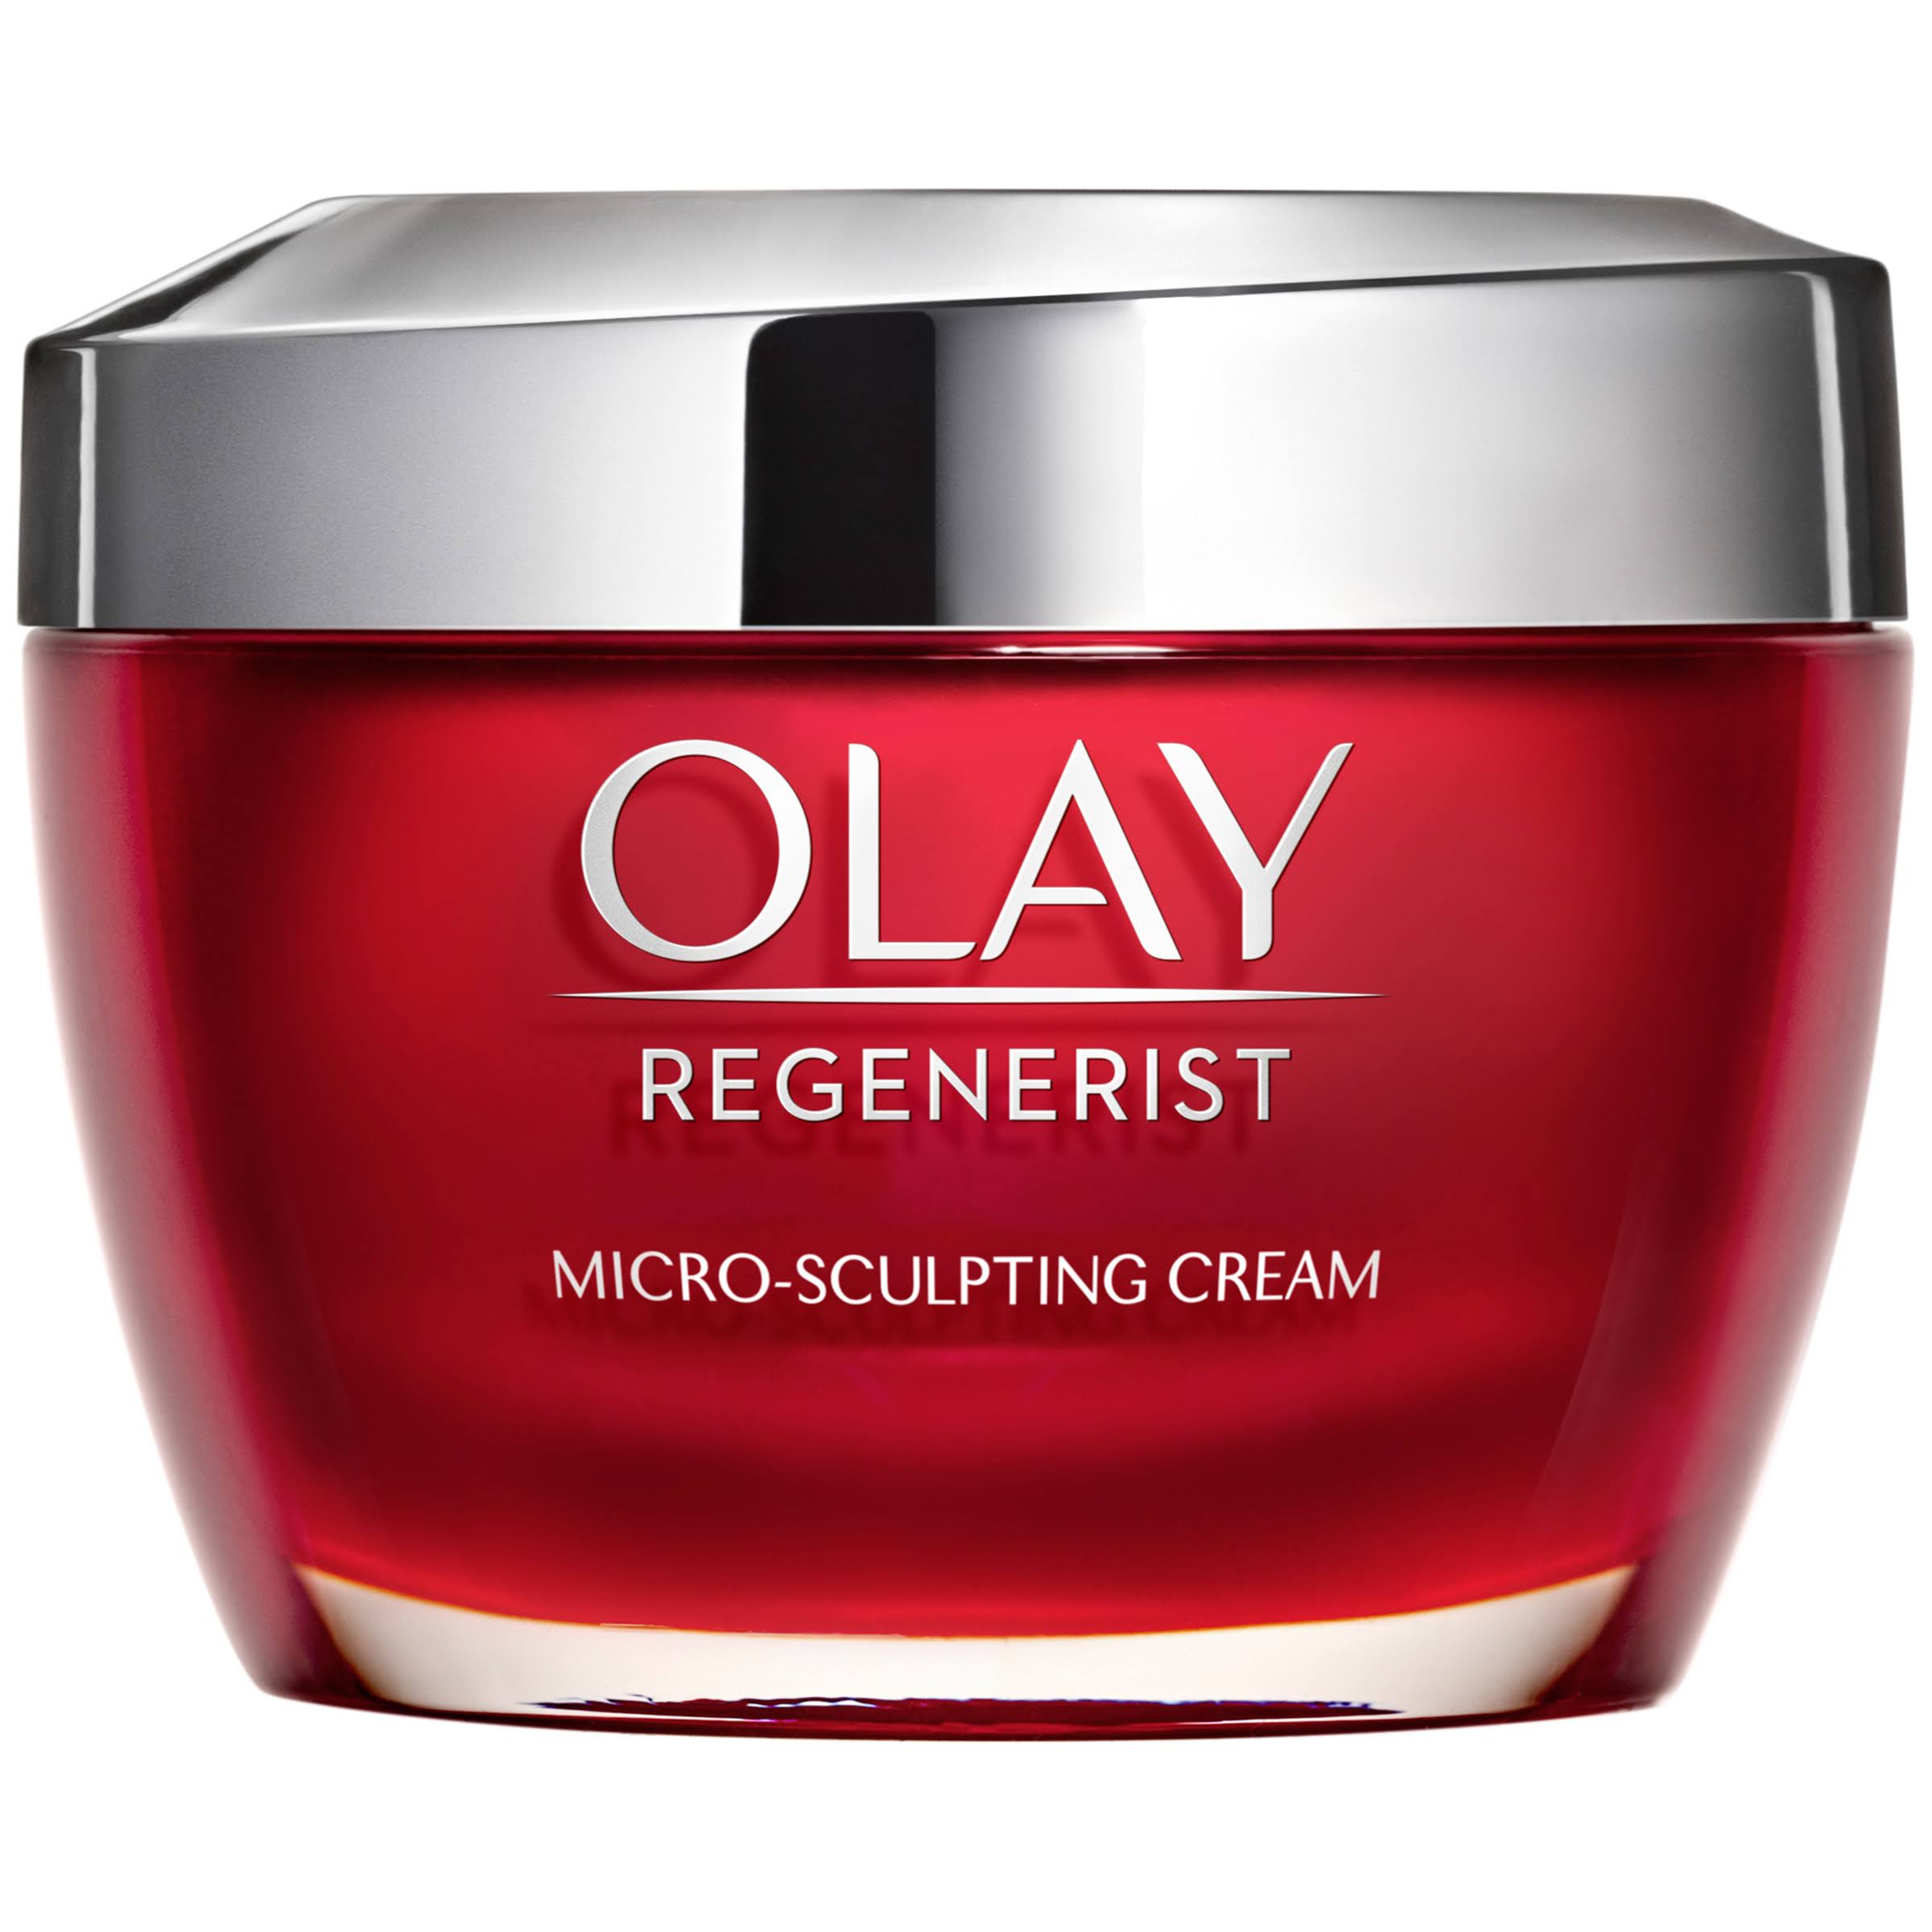 Olay Regenerist Micro-Sculpting Cream - 48g